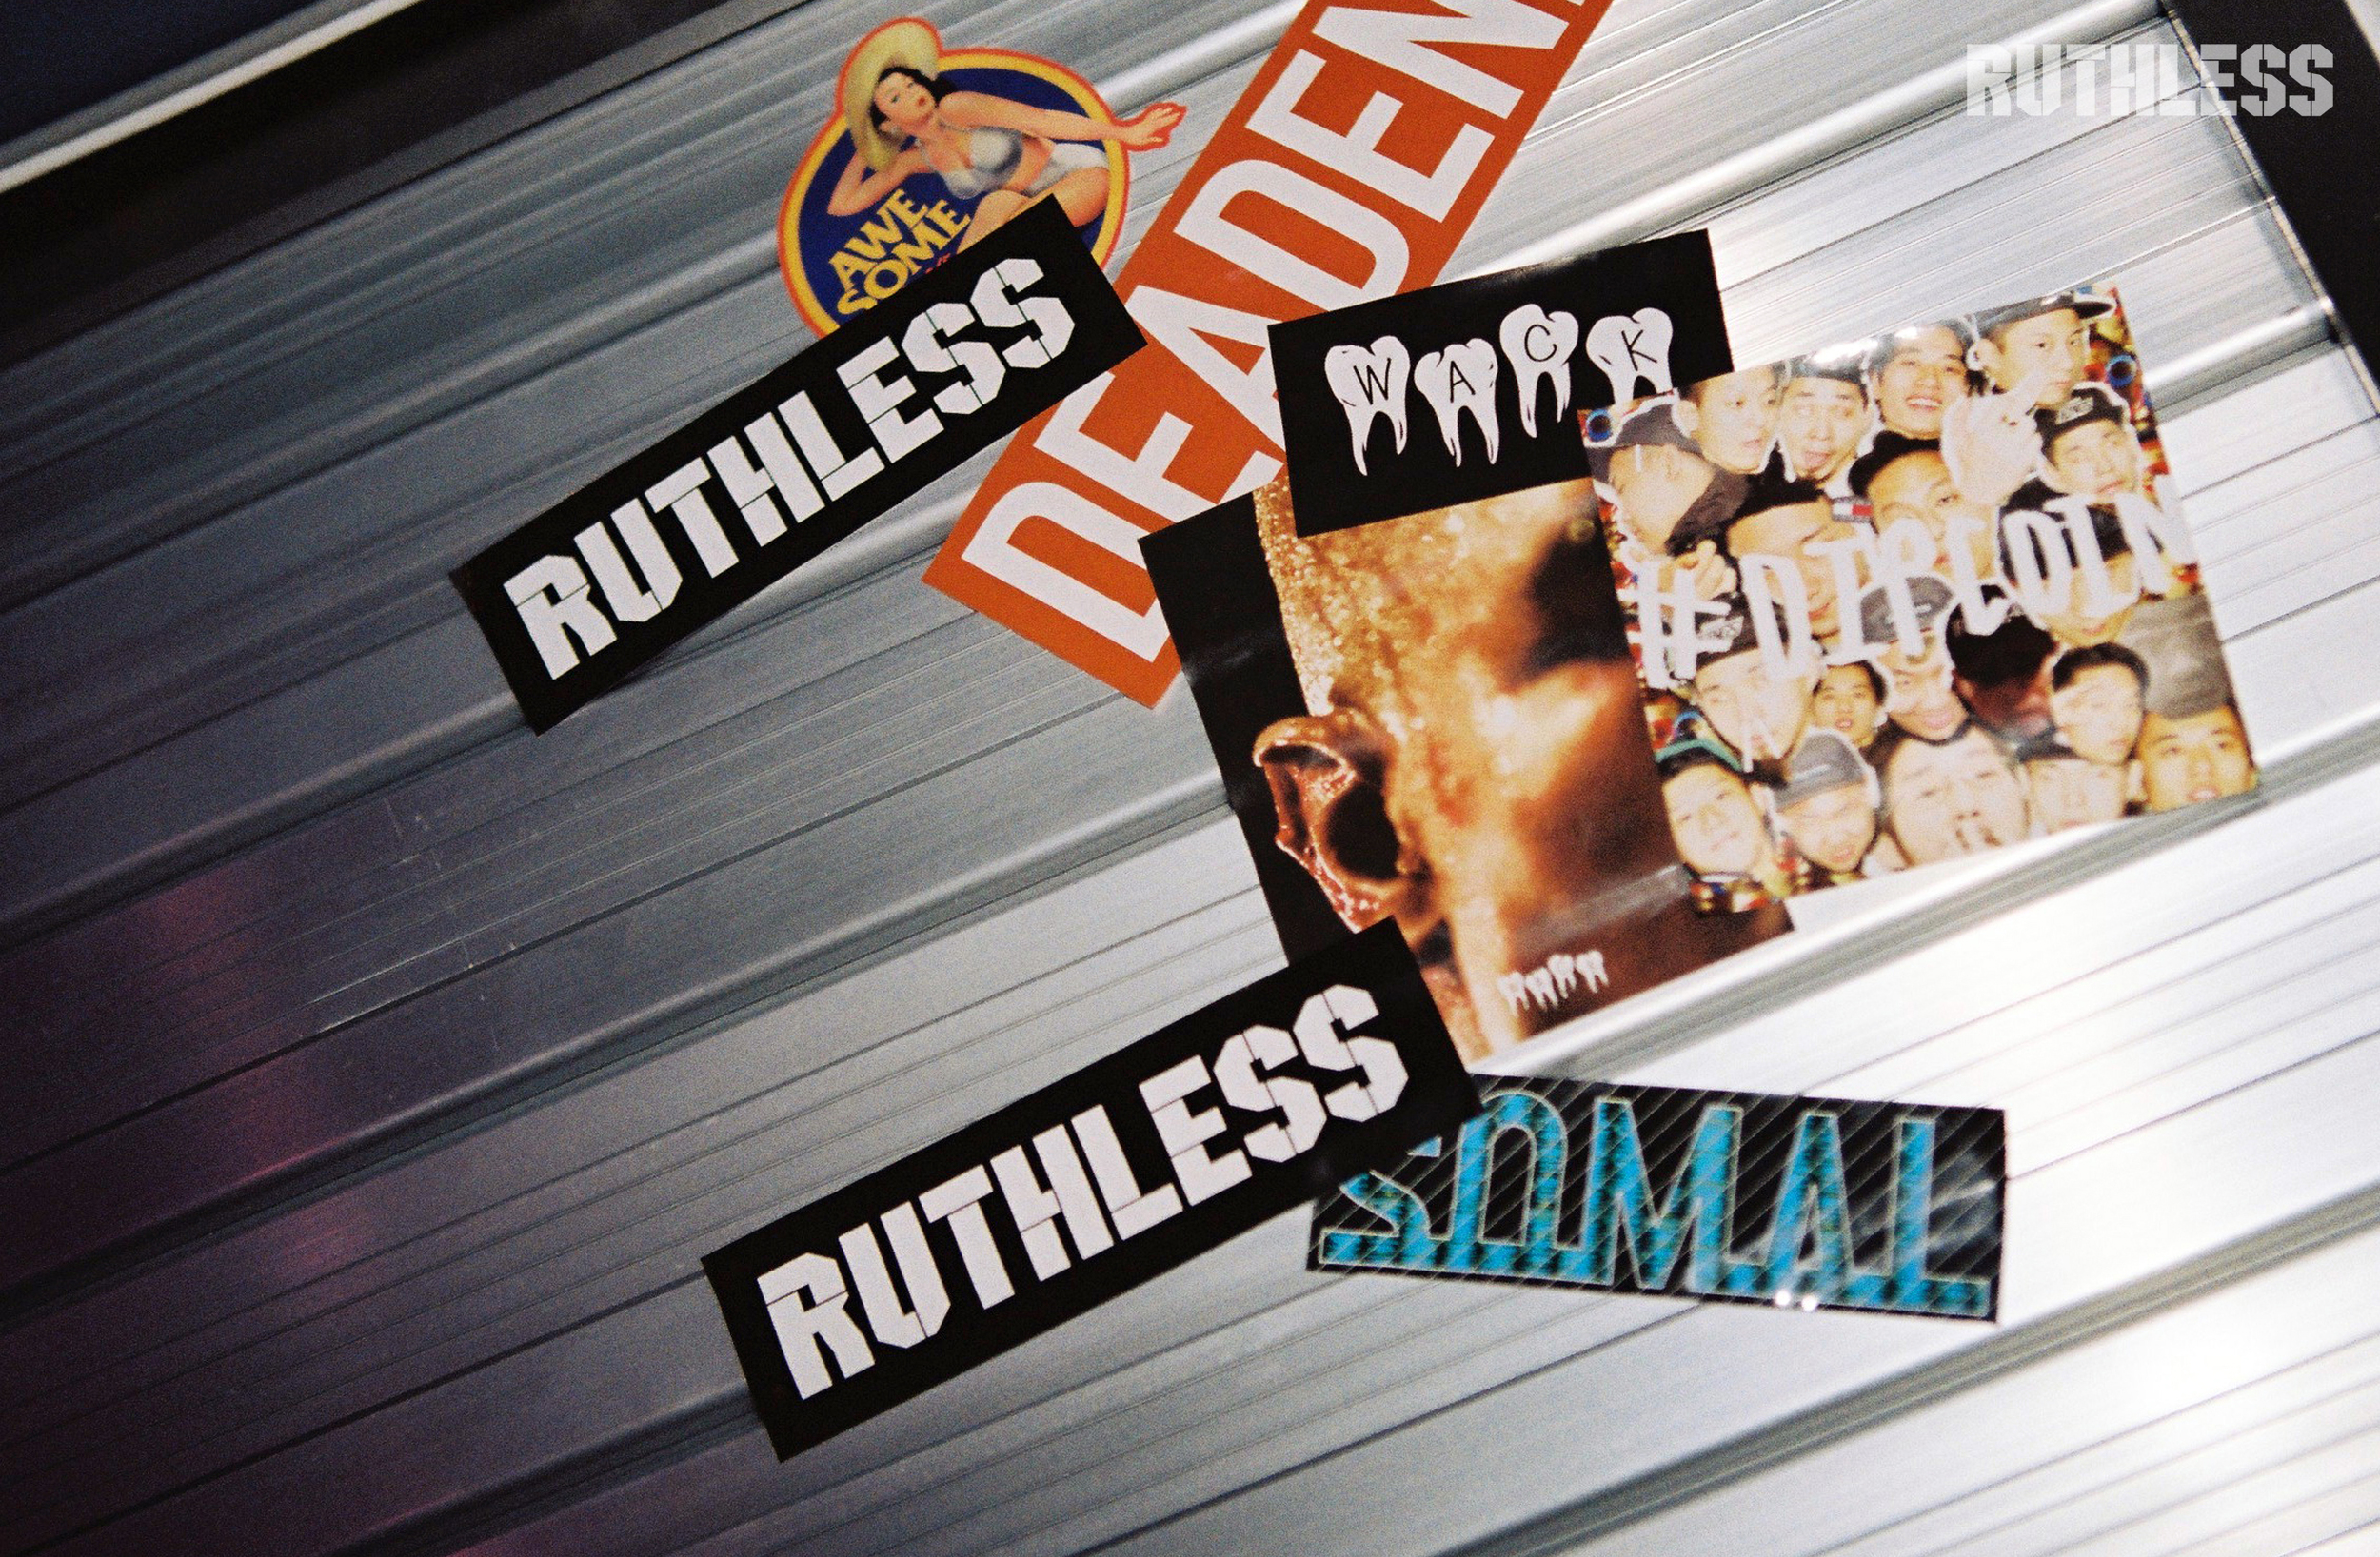 ruthless_party_004.jpg